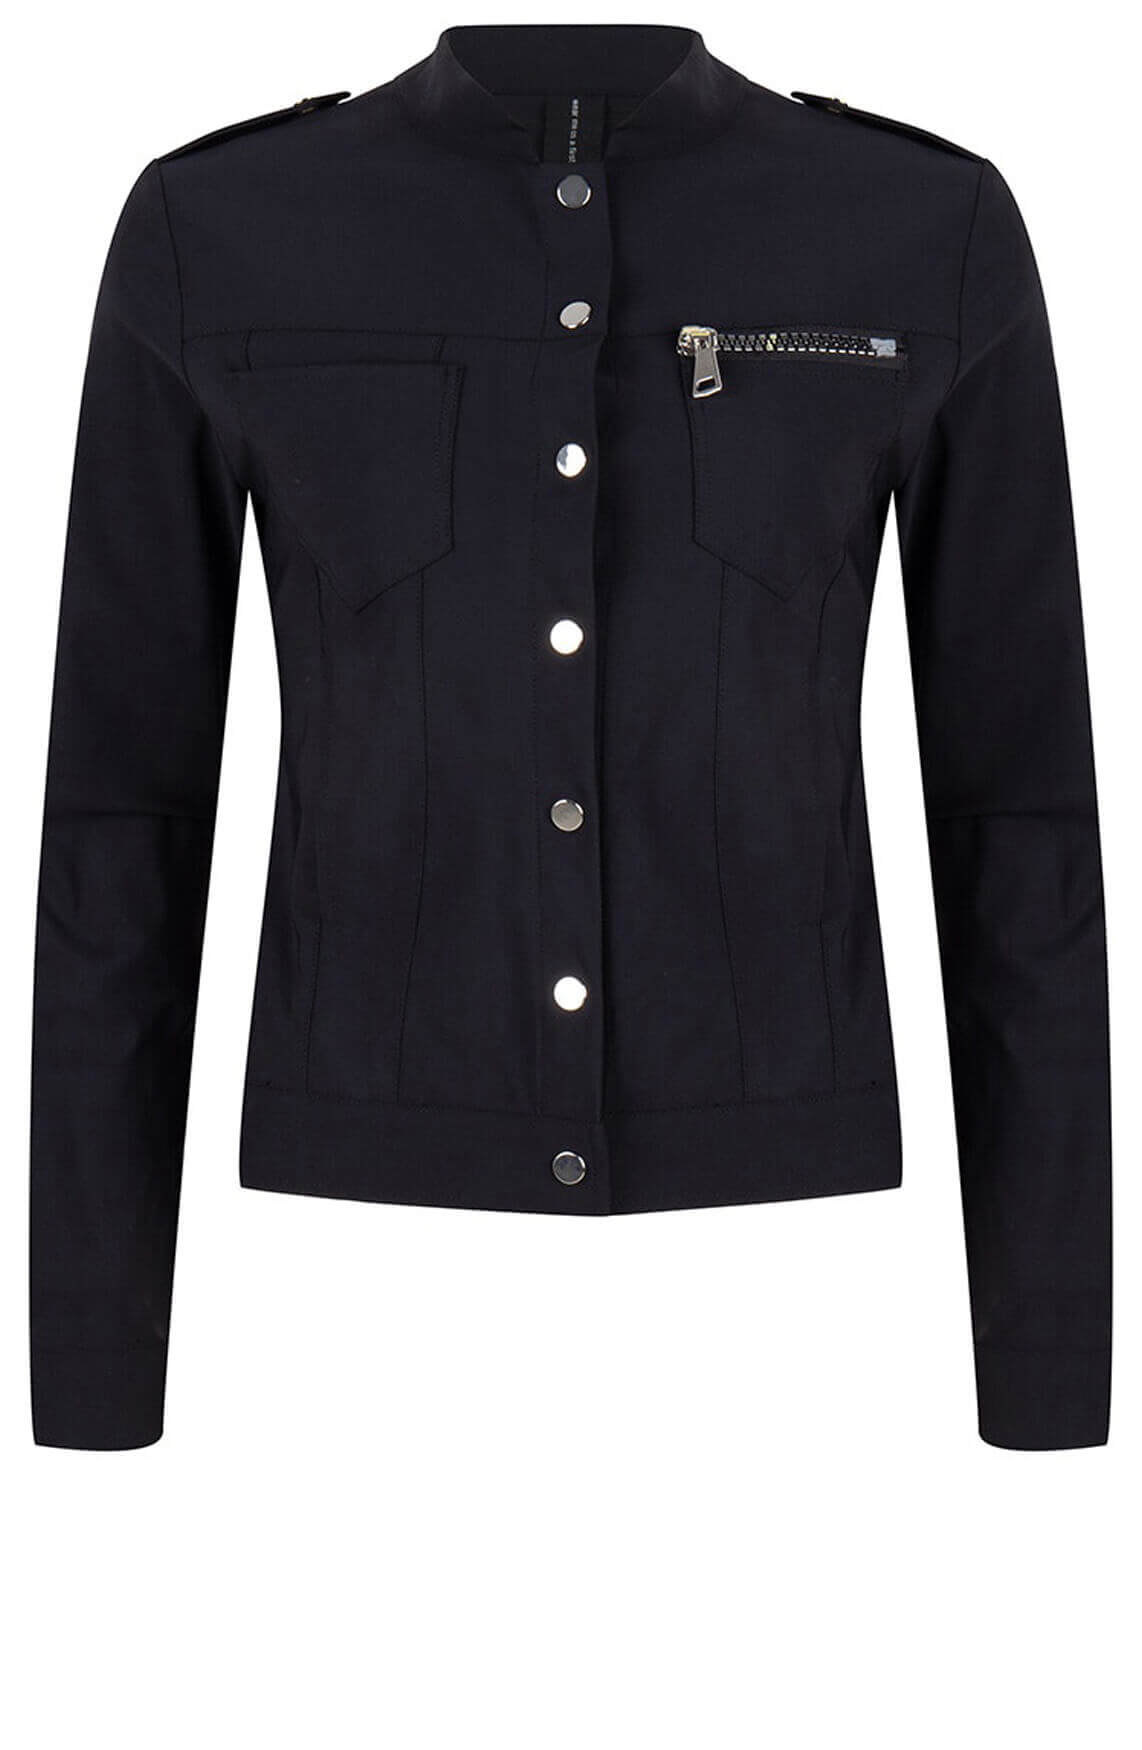 Jane Lushka Dames June worker jacket zwart